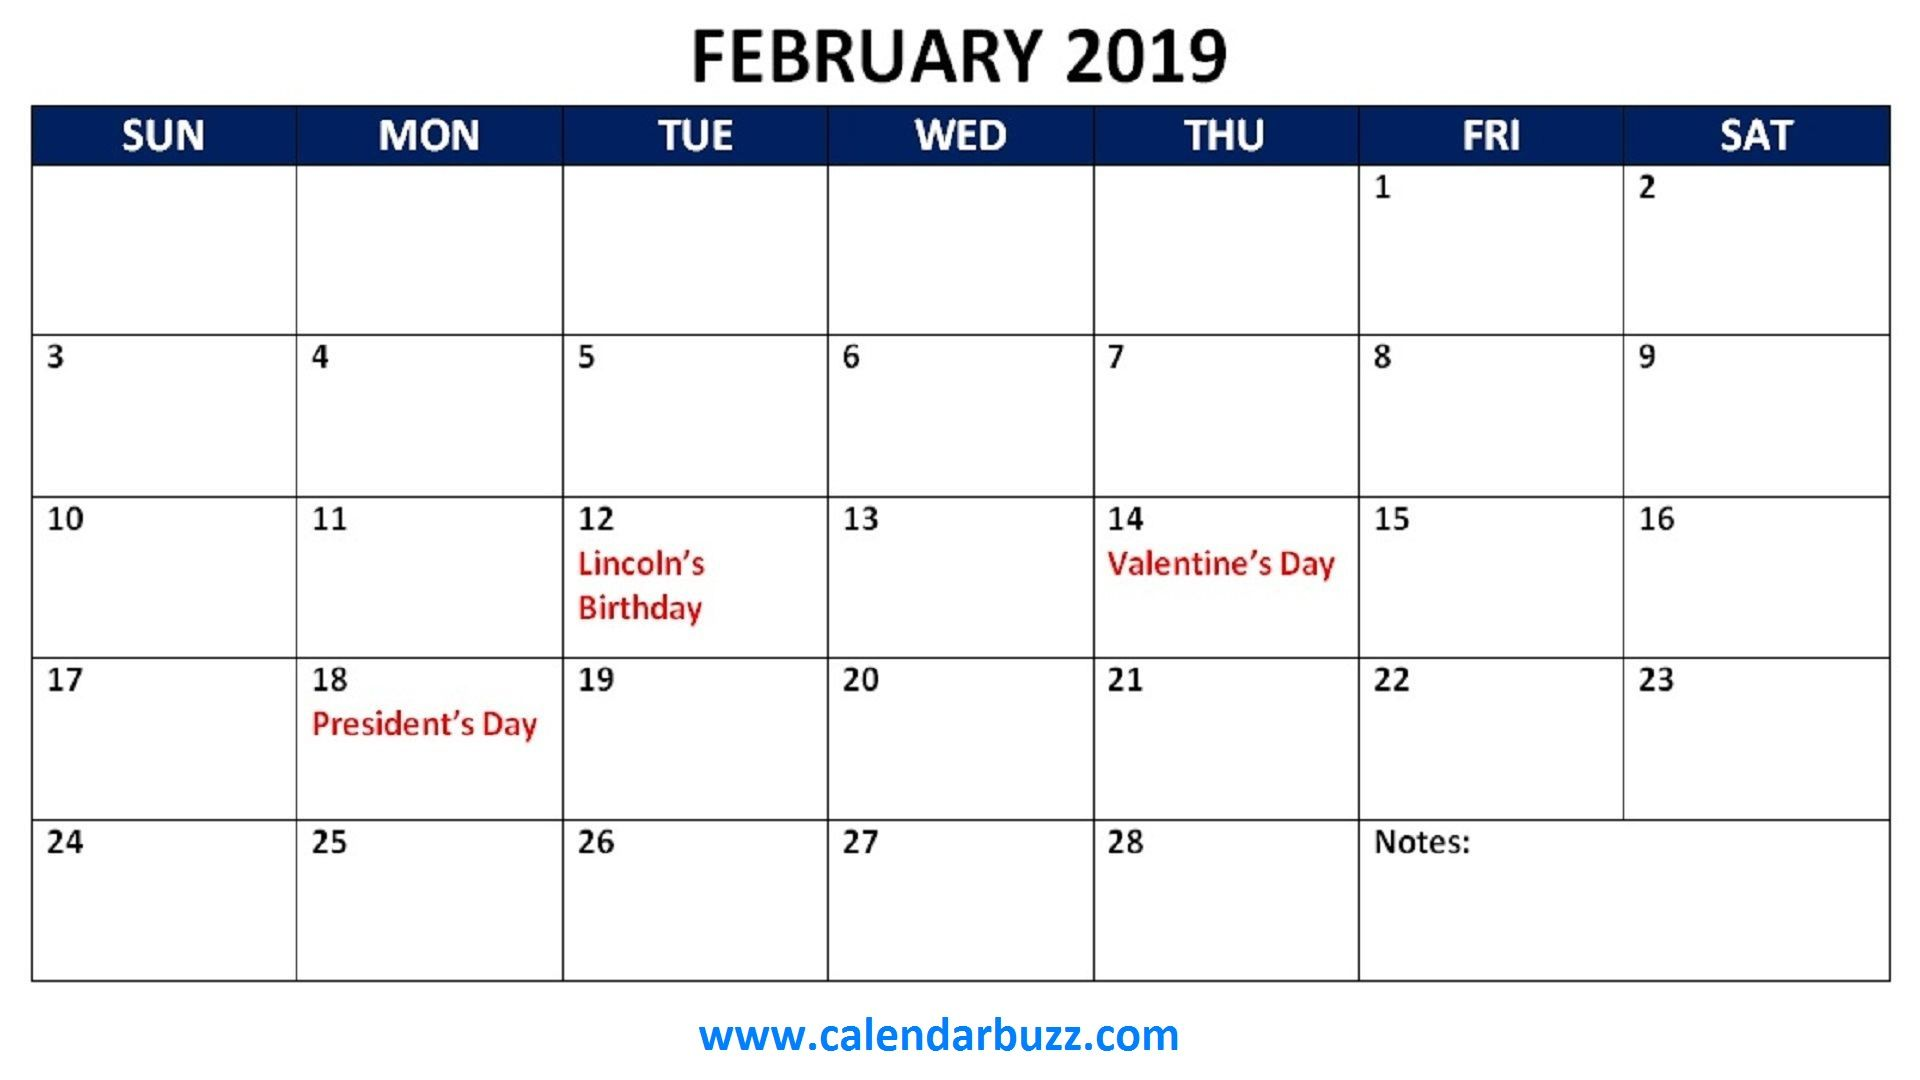 February 2019 Calendar With Holidays Printable